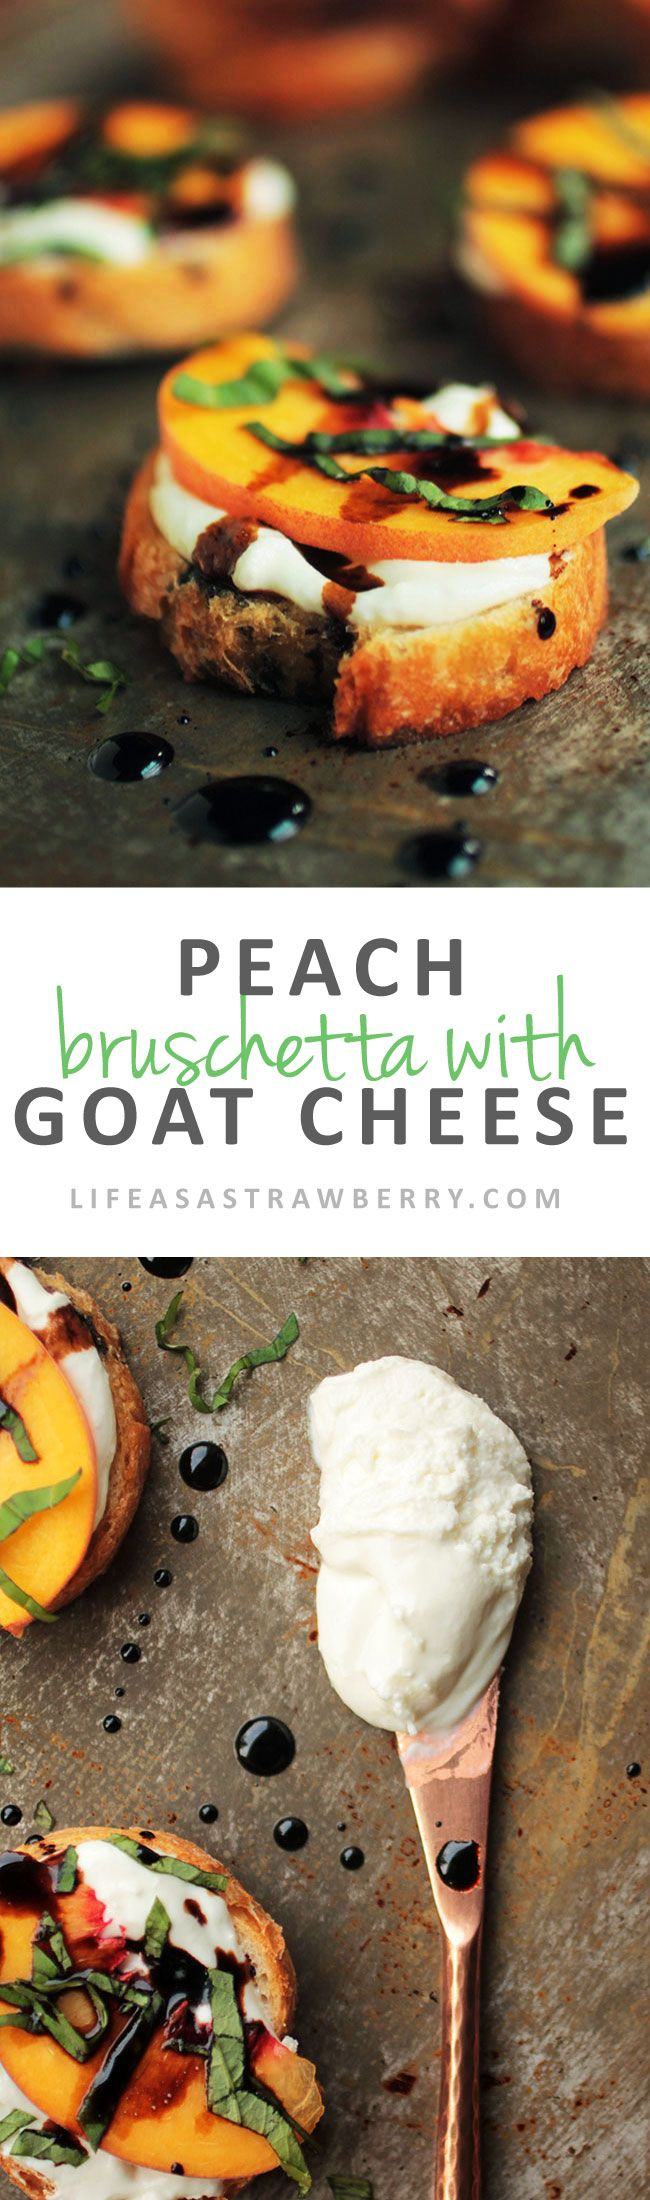 Peach Bruschetta with Whipped Goat Cheese - This easy crostini appetizer has a delicious whipped goat cheese base, topped with fresh peaches, balsamic vinegar drizzle, and fresh basil. Perfect for entertaining or as a light dinner! Vegetarian.